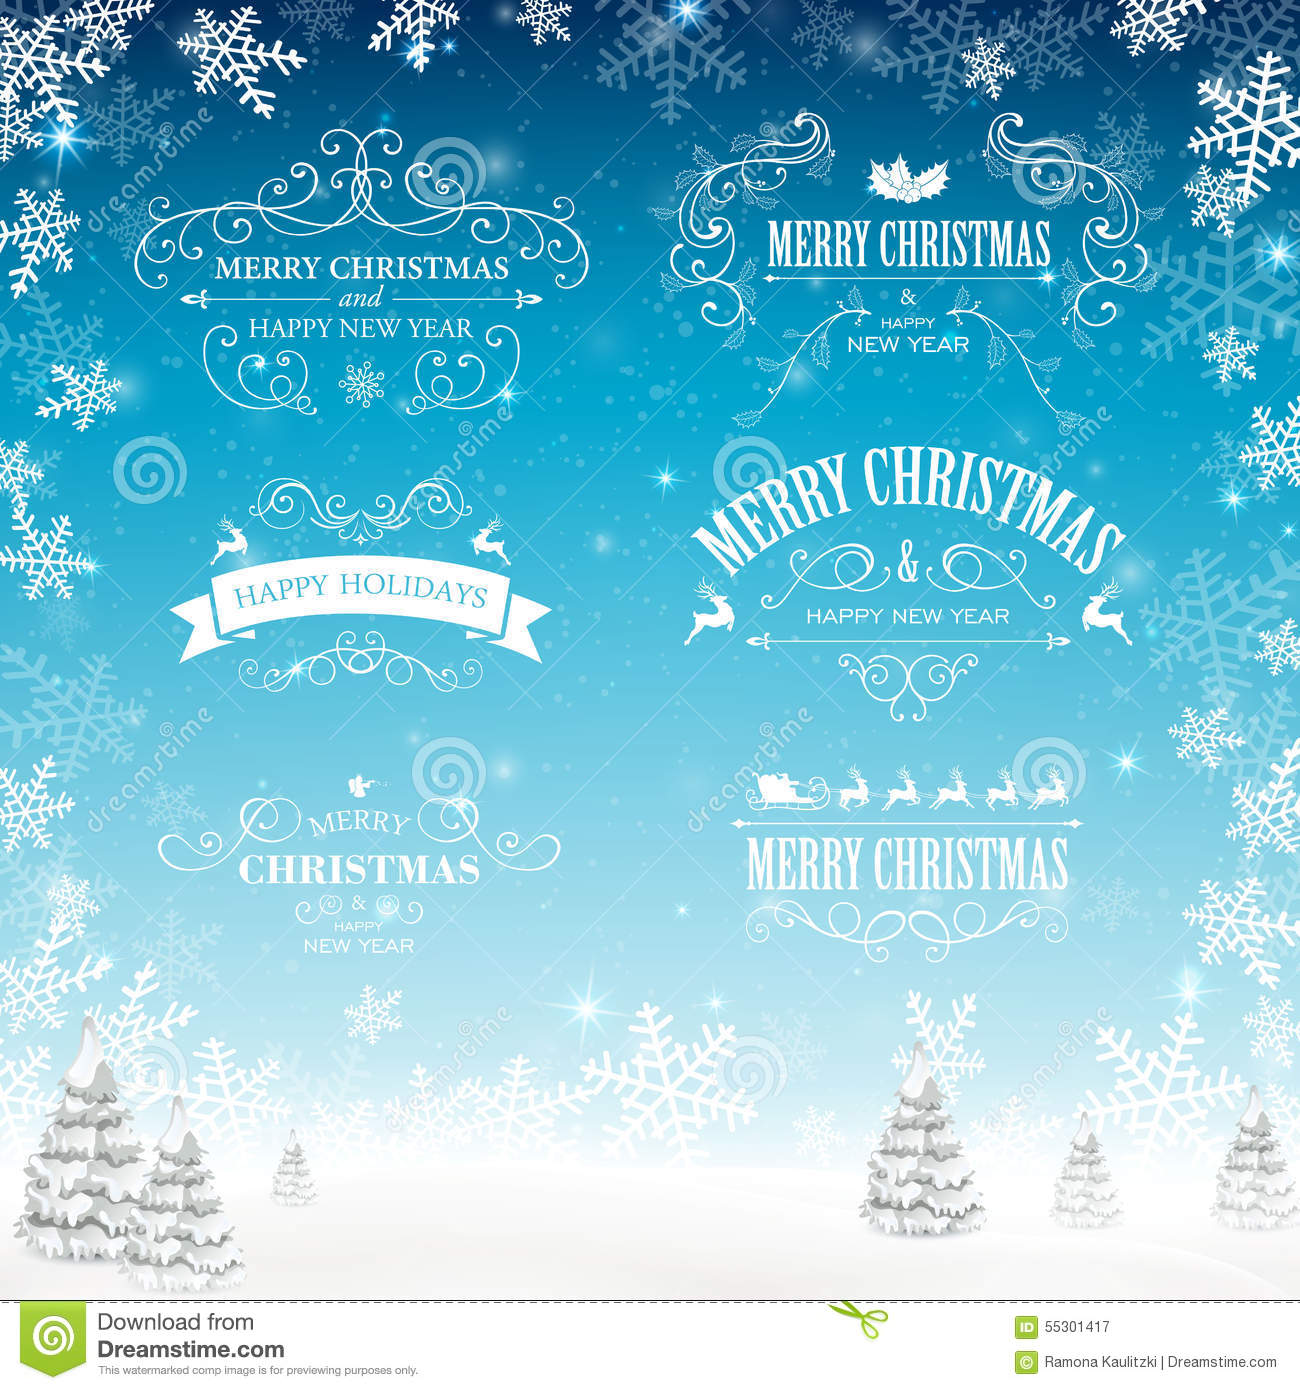 download decorative christmas labels stock illustration illustration of advertising element 55301417 - Decorative Christmas Labels